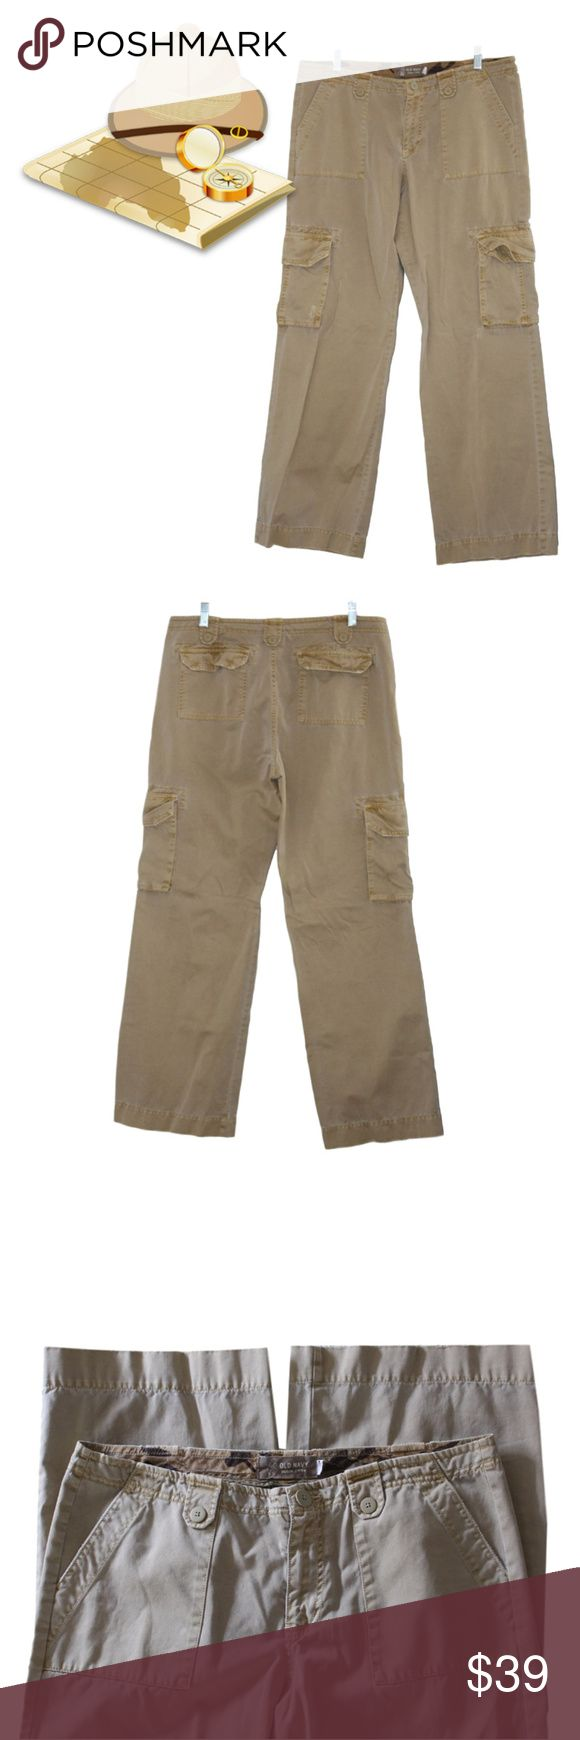 Old Navy Women's Cargo Pants Extra Pockets •These Old Navy Women's Cargo Pants are practical, comfortable and durable. •Features: low rise, 2 button closure back pockets, 2 front slit pockets, 2 button closure side leg pockets and zipper fly closure. •Size: 16 Long (please see photos for waist, knee, hem, hips and thighs circumference and other measurements.) •Material: 100% Cotton  •Color: beige •Condition: gently used, one owner Old Navy Pants